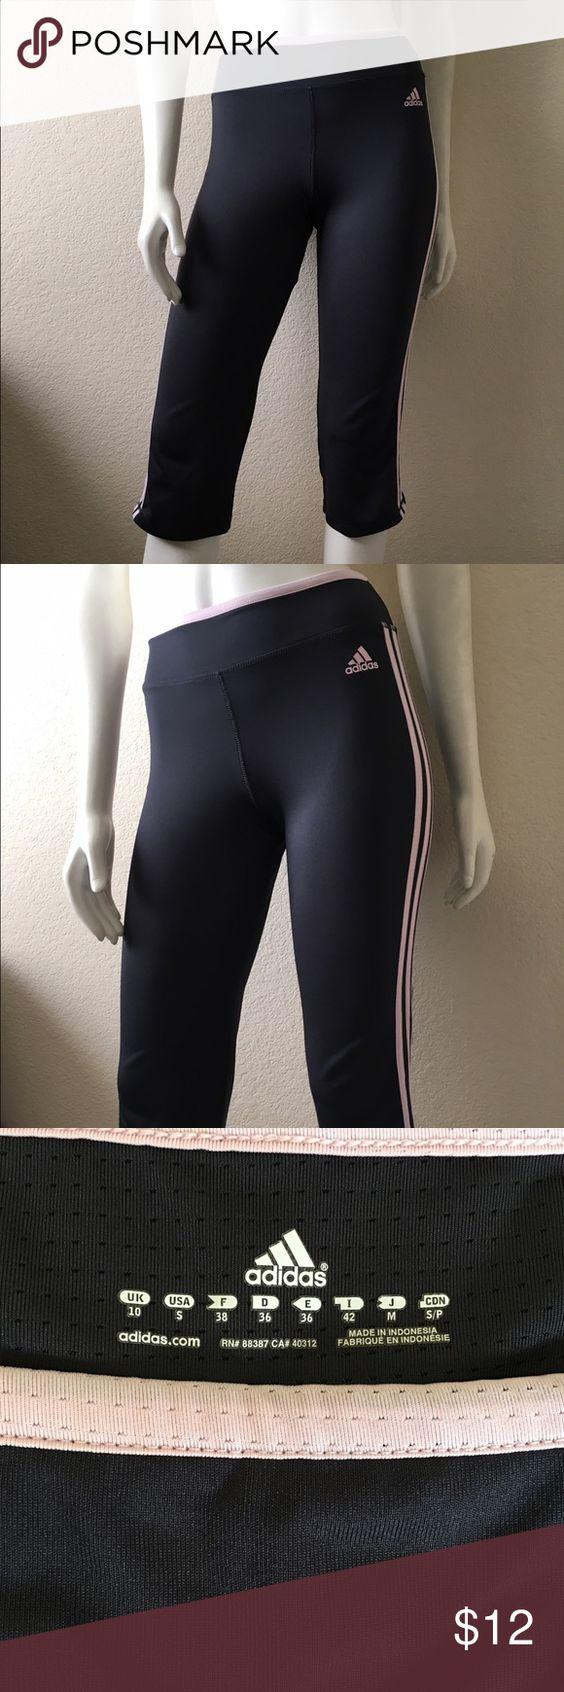 Adidas Capri Pants Adidas Capri Pants come in a dark gray with pink stripes. Size: S. In excellent condition. Adidas Pants Capris